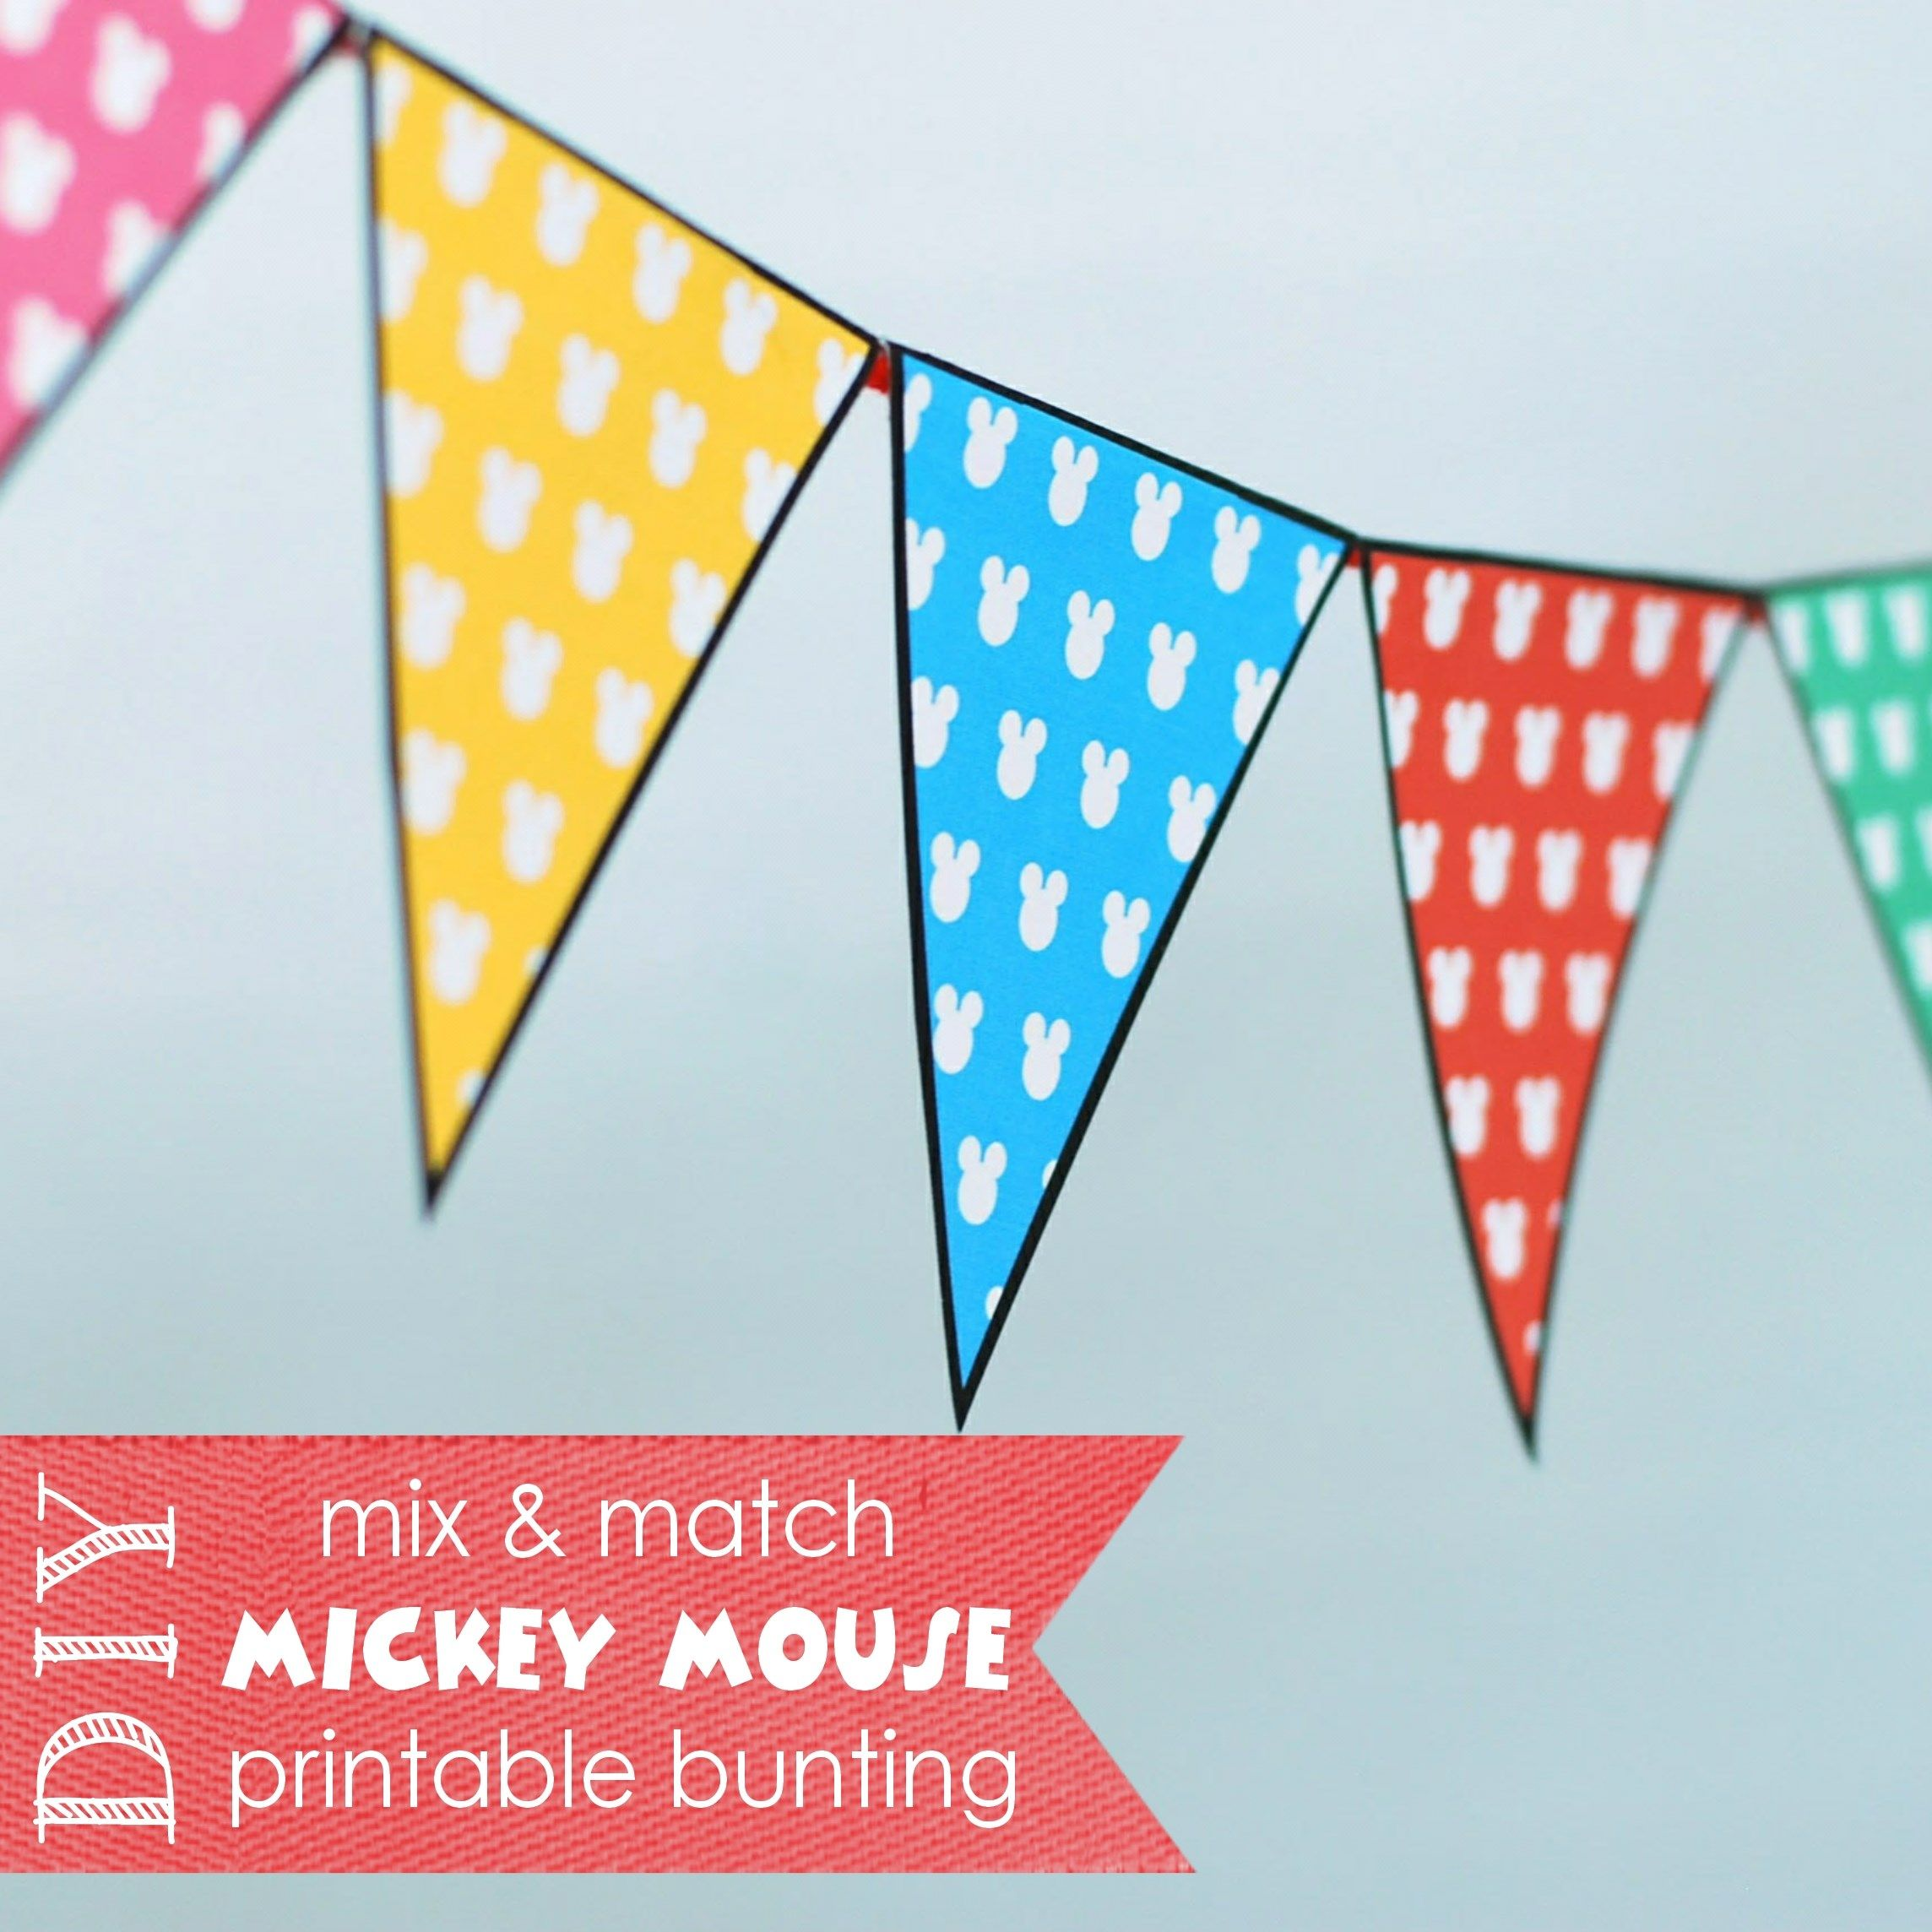 Free Printable {Mix & Match} Mickey Mouse Party Bunting